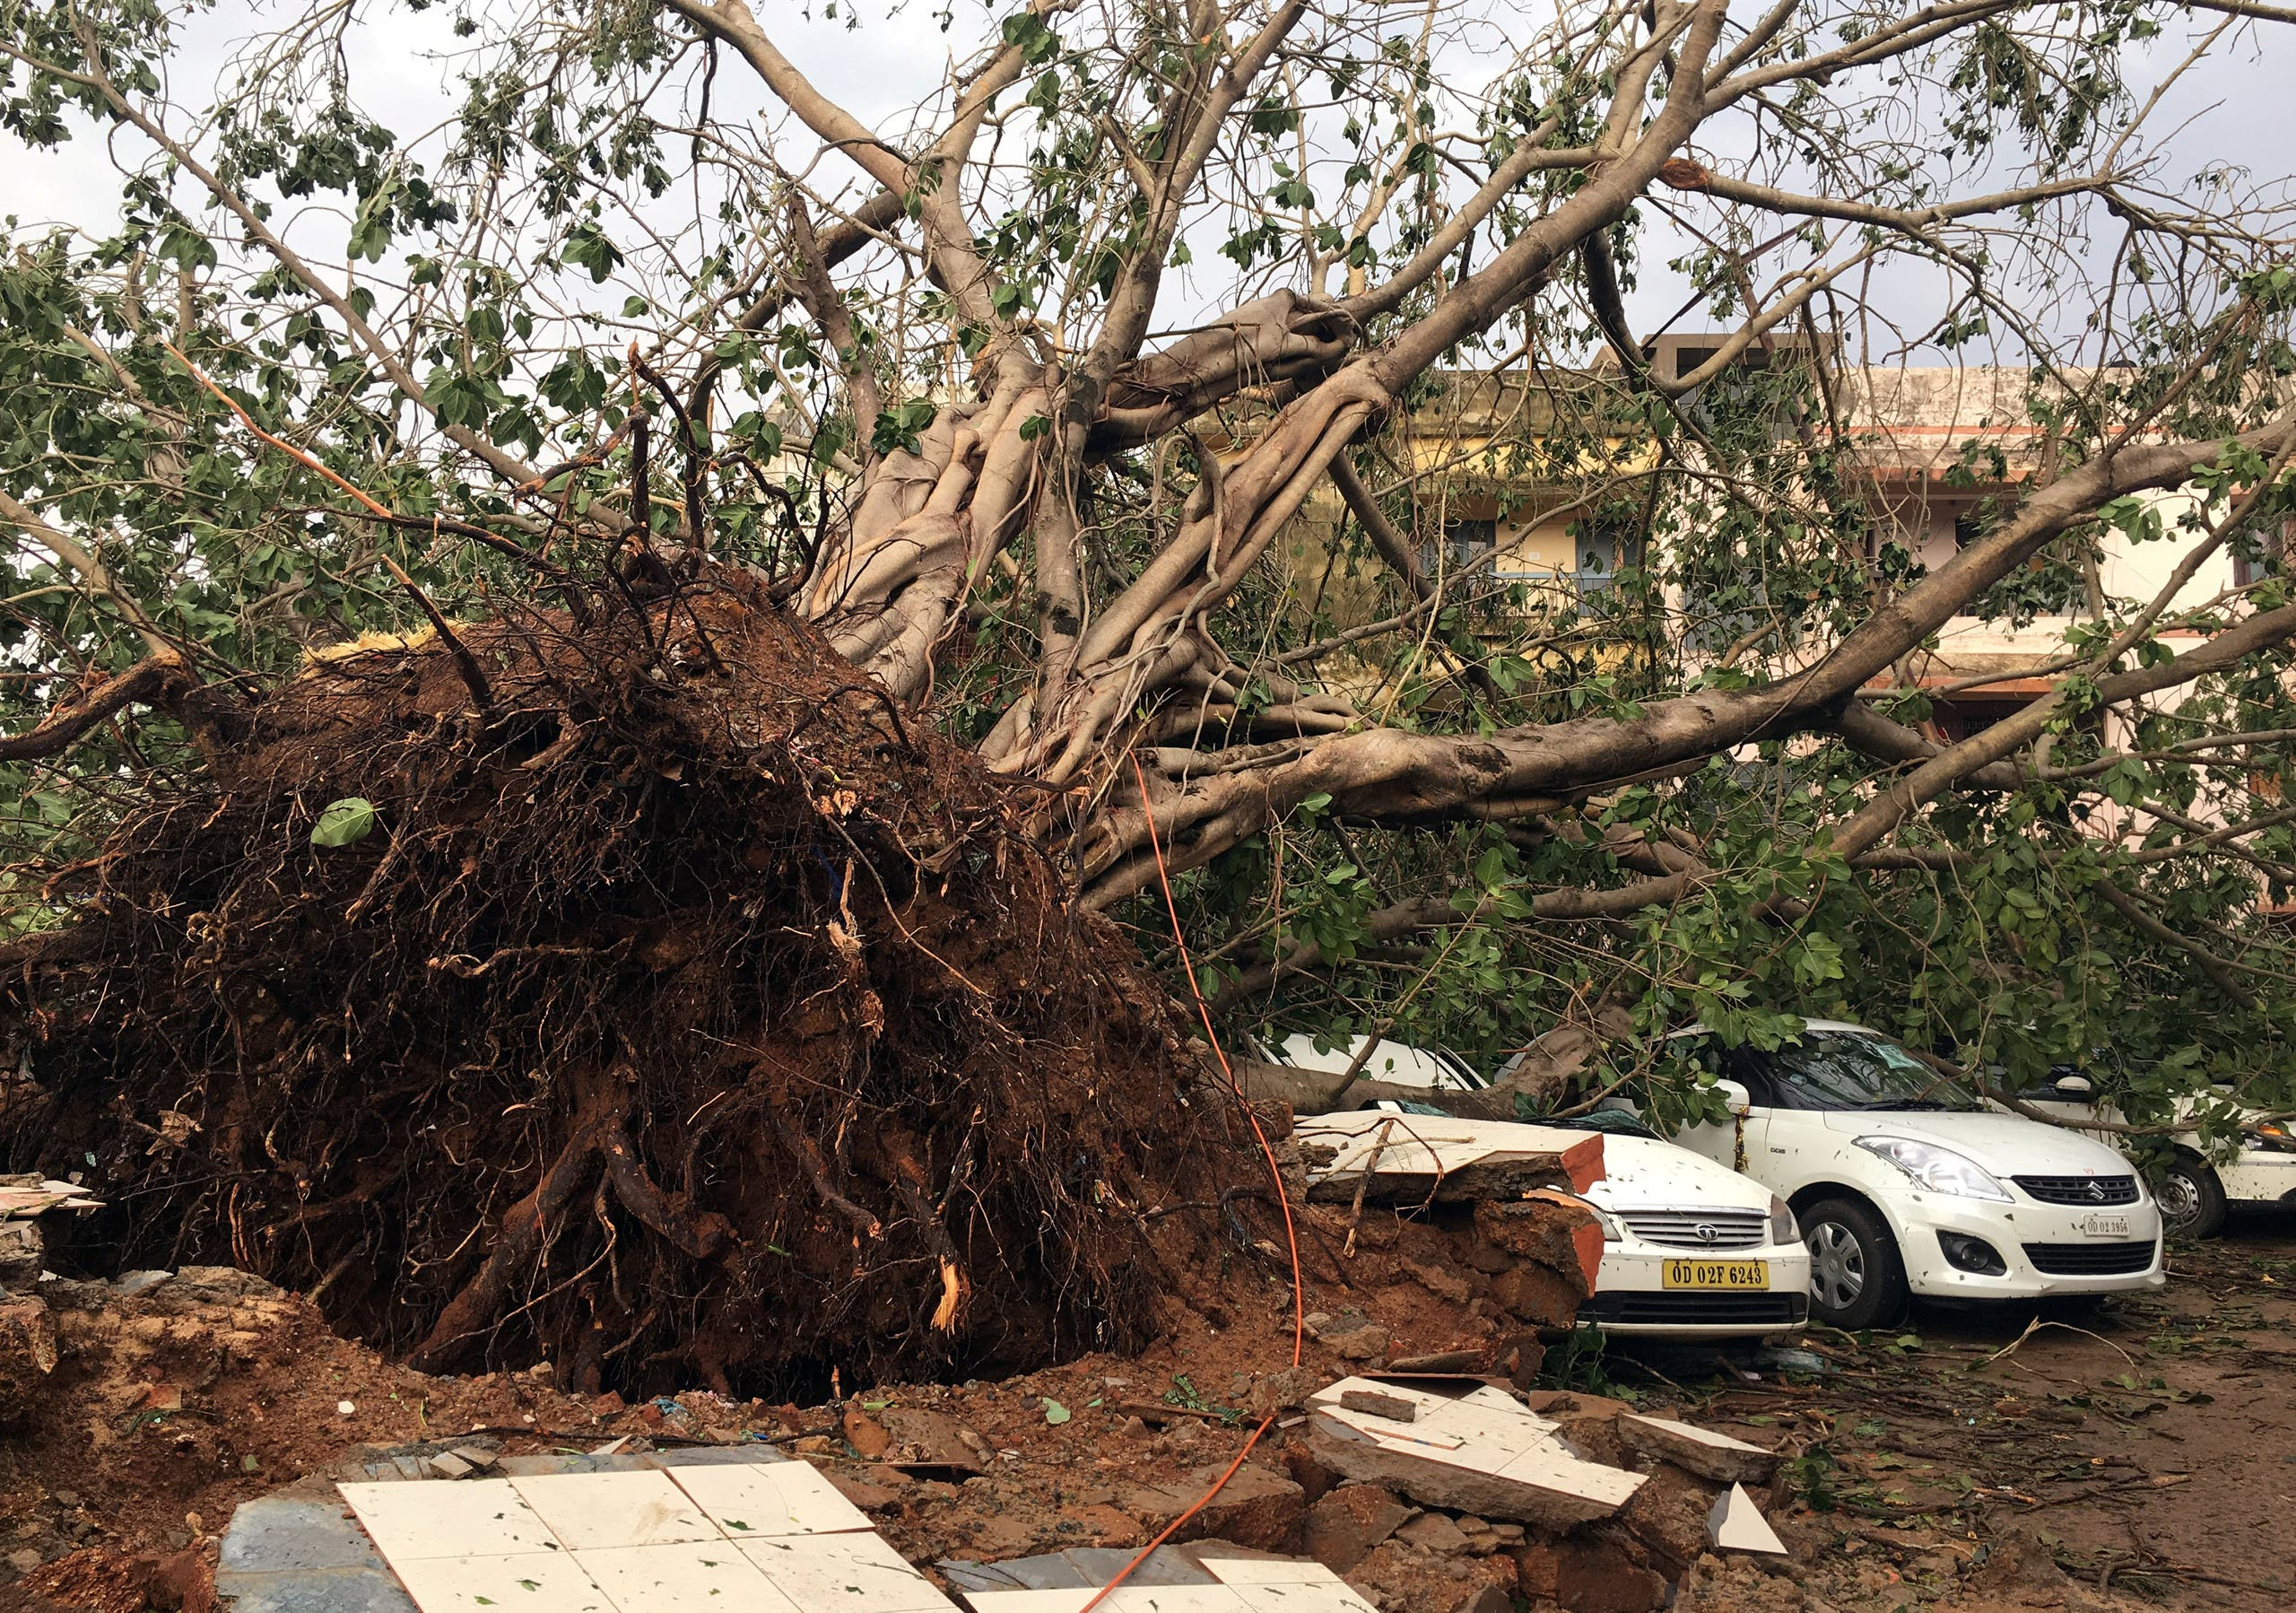 Cars are damaged by an uprooted tree in a residential area following Cyclone Fani in Bhubaneswar, india (reuters)